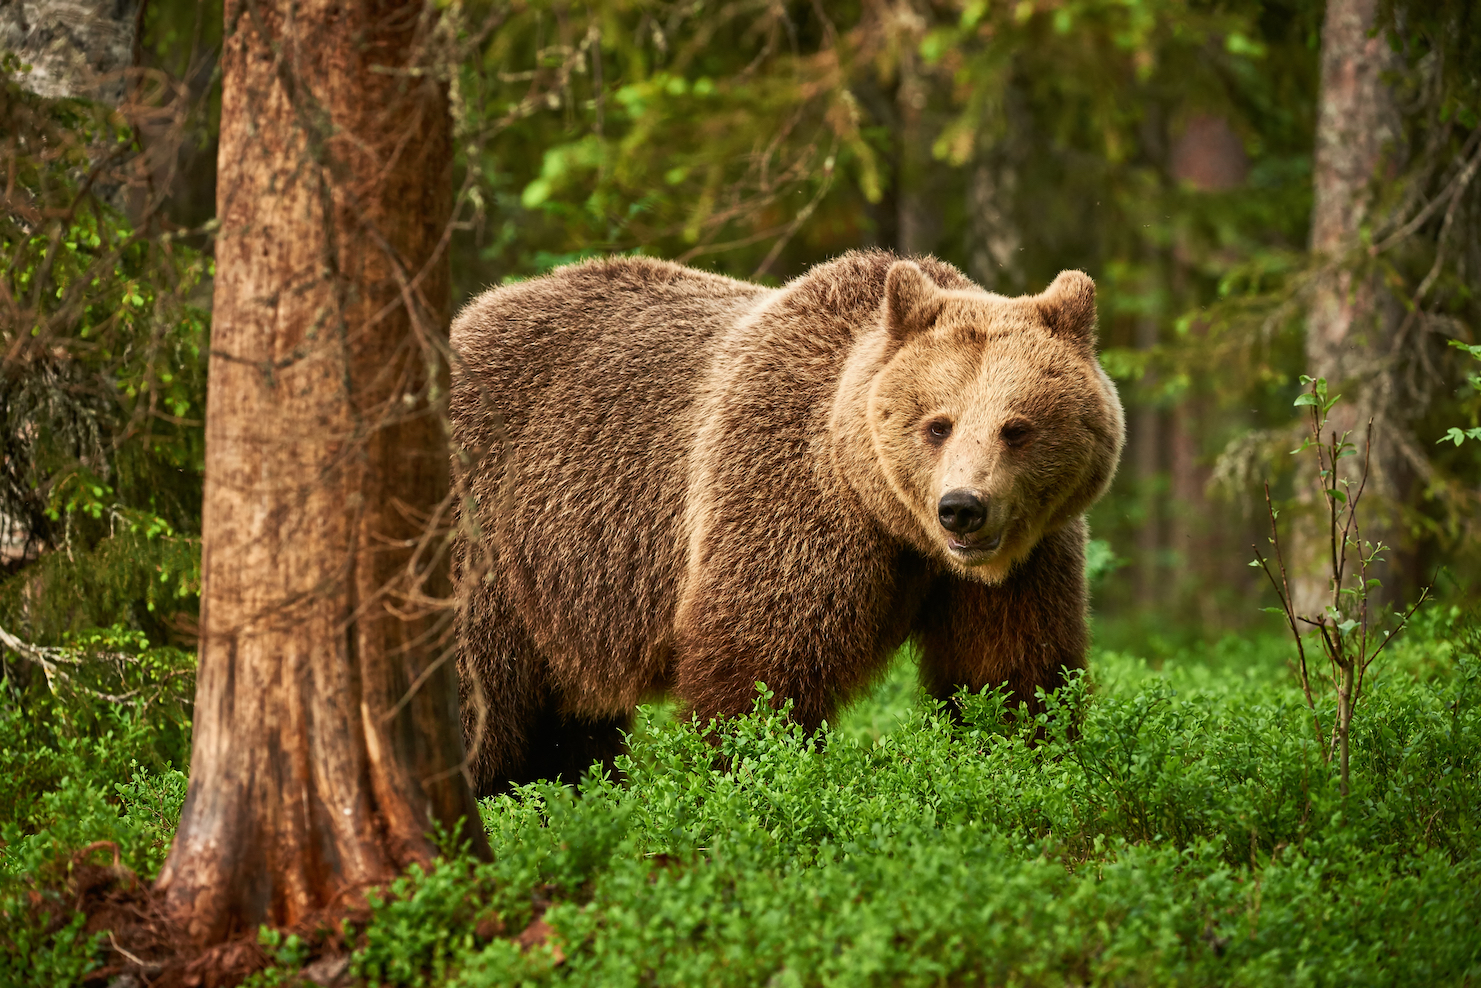 When brown bears twist their feet into the ground, it leaves behind a scent containing up to 26 compounds that let other bears know.